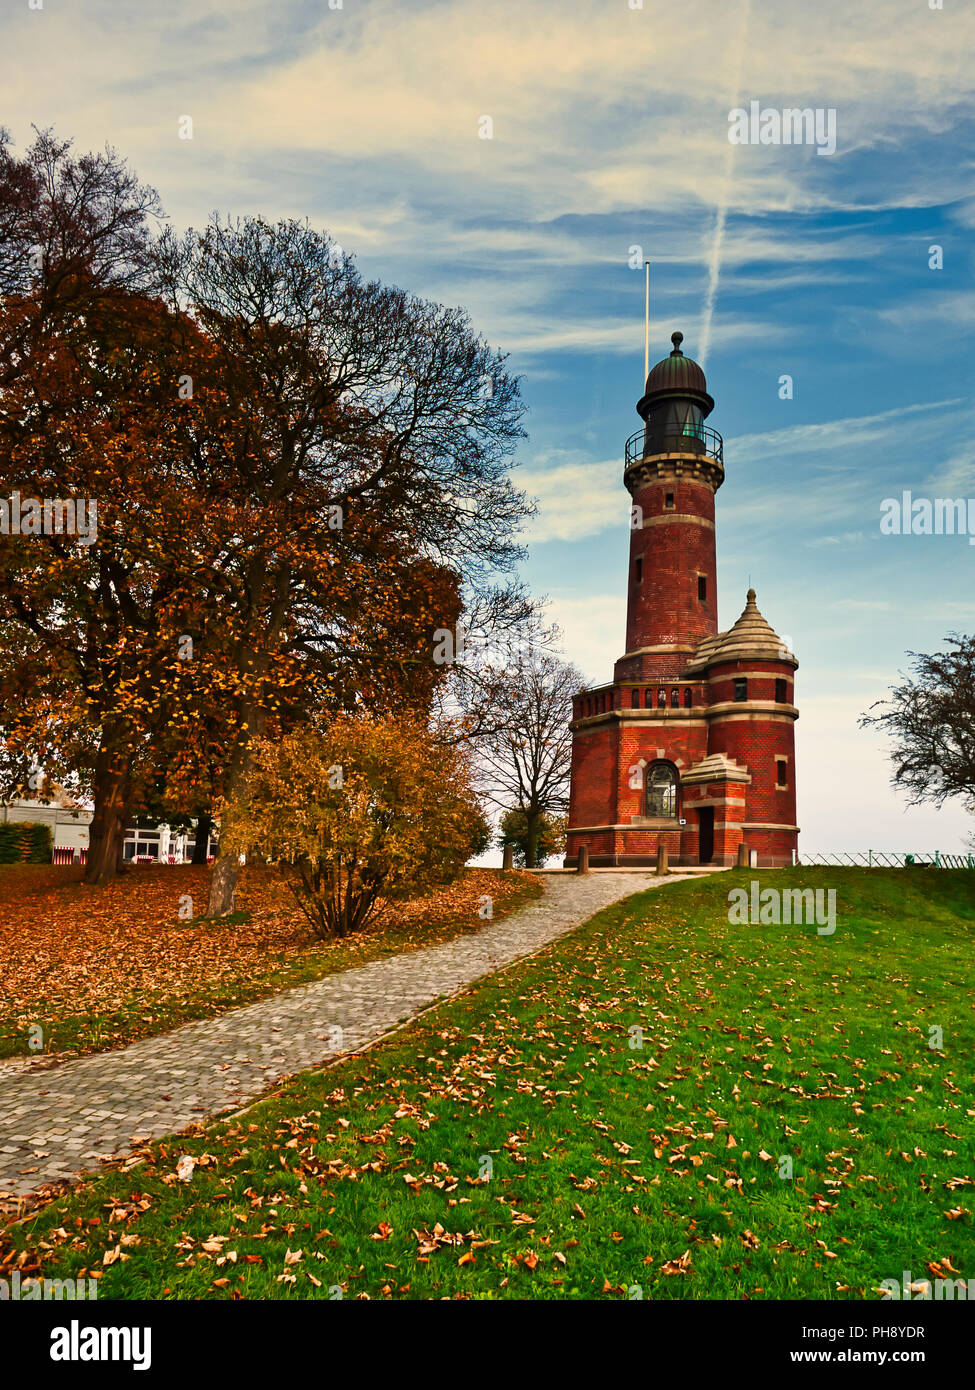 Leuchtturm Kiel-Holtenau. Deutschland. The lighthouse in Kiel harbour. Germany is a popular tourist attraction.  It was originally built in 1784 and its lighthouse tower is 20m tall.  Photographed on a late autumn's day where many of leaves have fallen off the trees covering the grass and path below.  It's a bright day with some light hazy cloud formations. - Stock Image